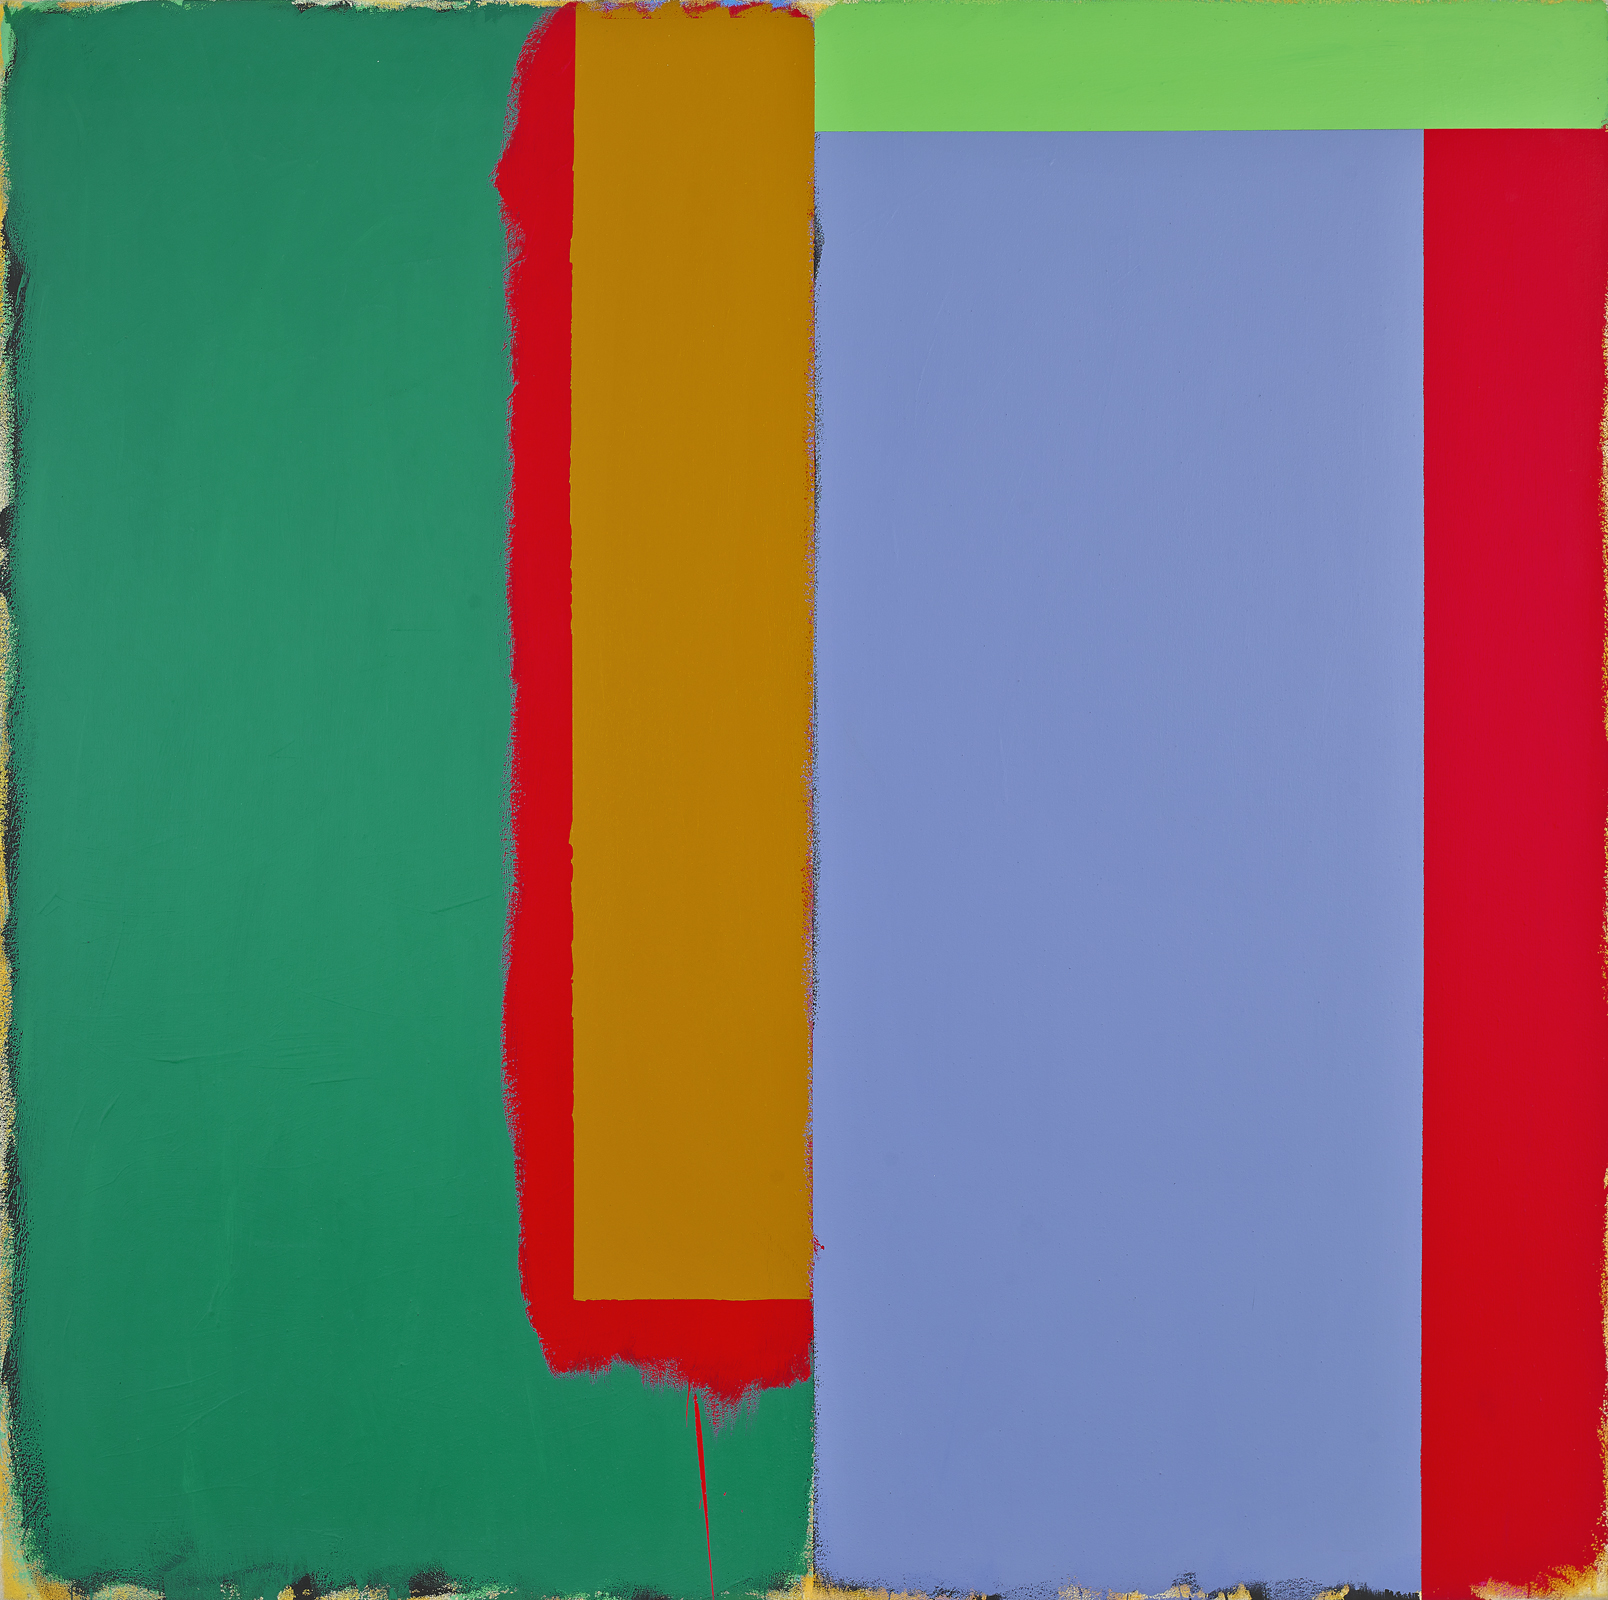 Marker/Dune, 1986  acrylic on canvas 60 1/8 x 60 1/8 inches; 152.7 x 152.7 centimeters